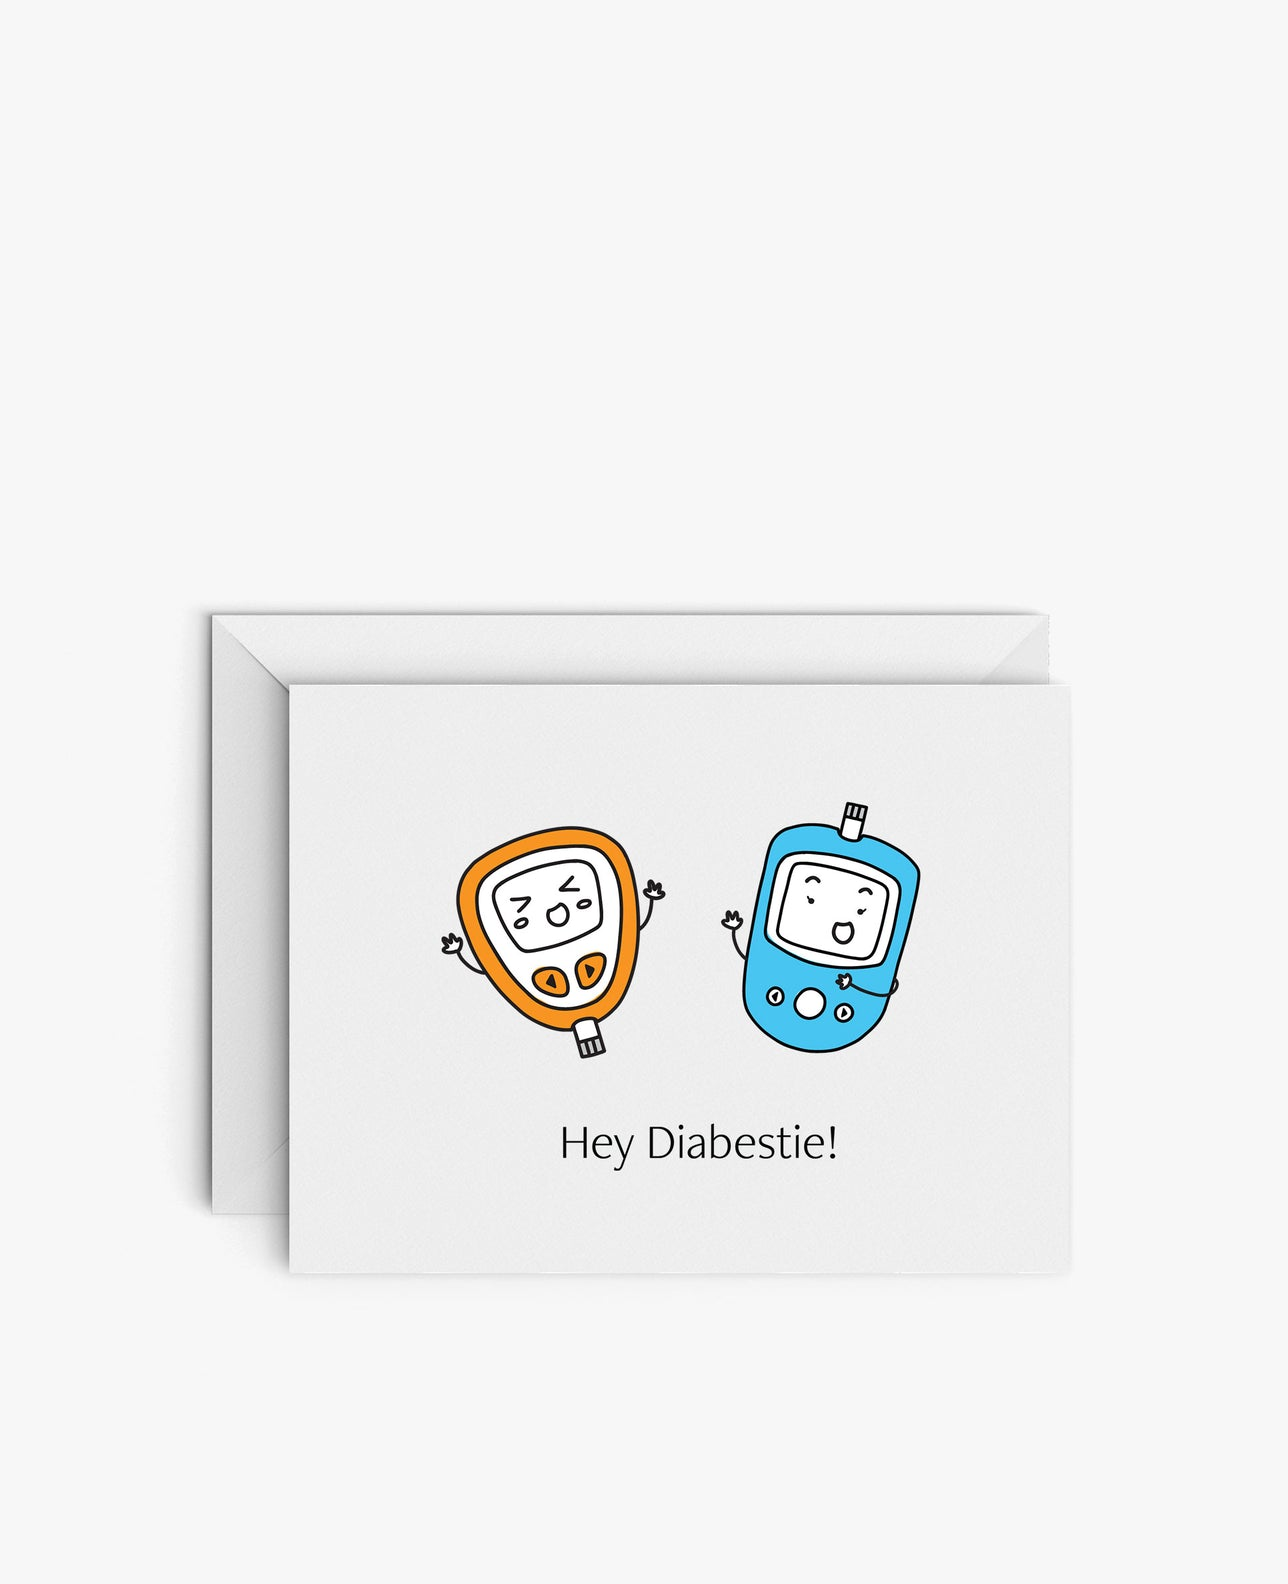 myabetic-diabetes-greeting-card